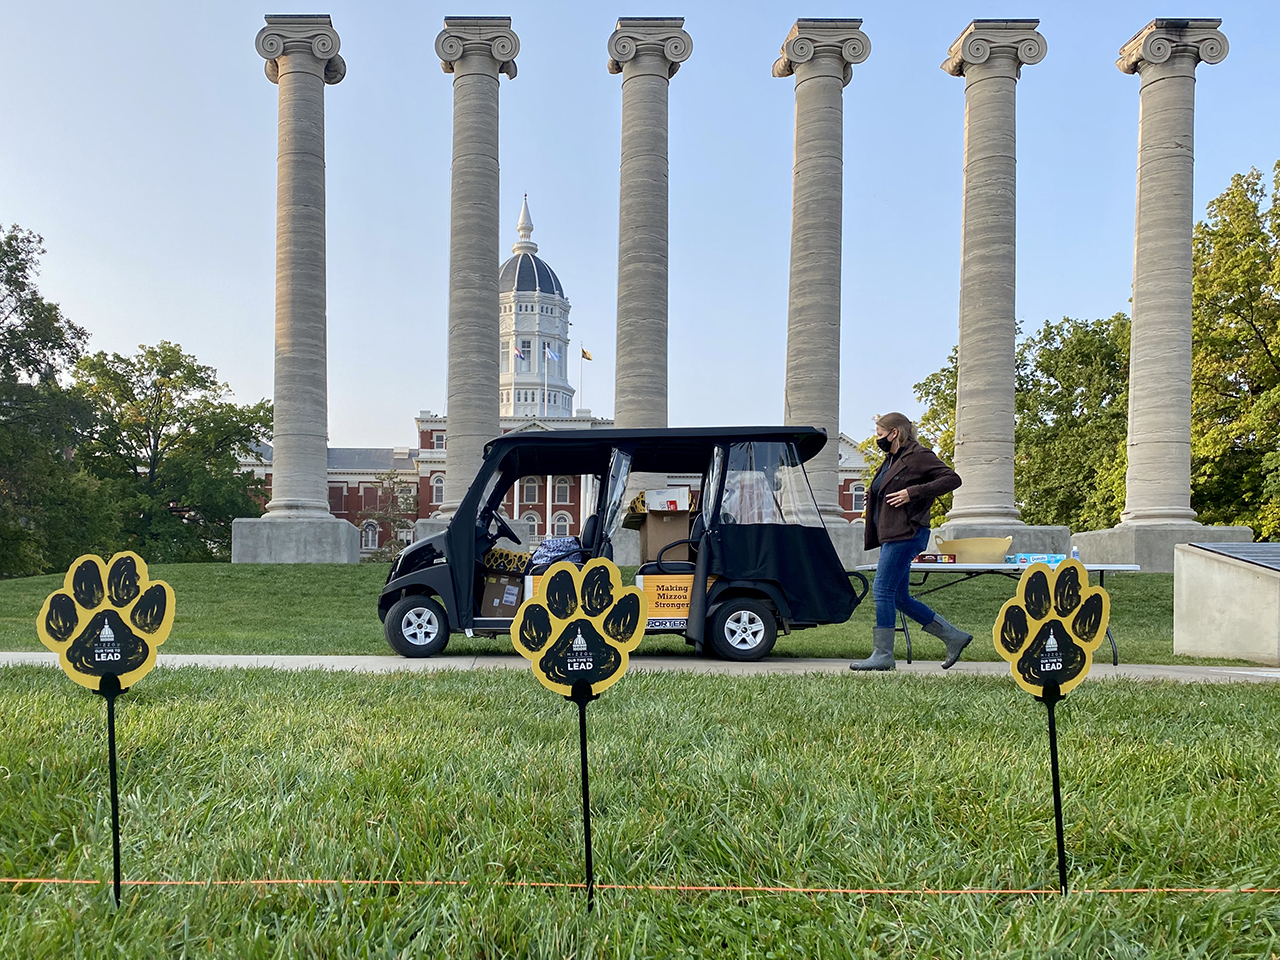 a woman walks in front of a golf cart with the columns in the background and paws on sticks in the foreground